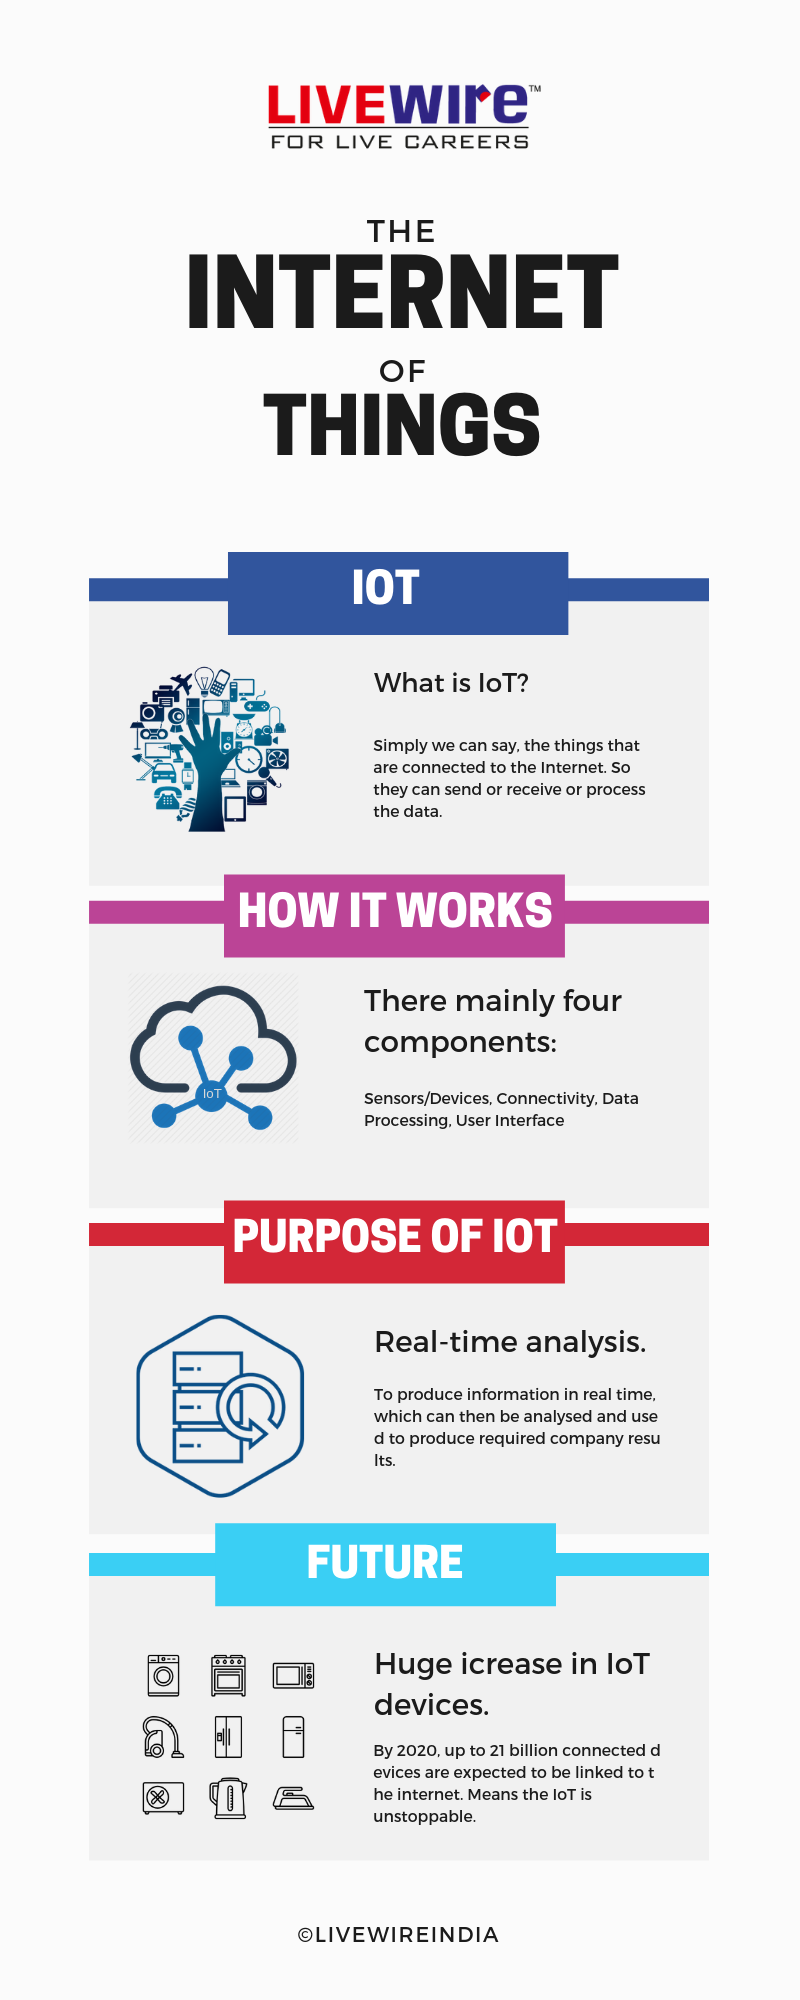 9d06f744c5ec829cb172533b83f24716 - Real Time Applications Of Iot